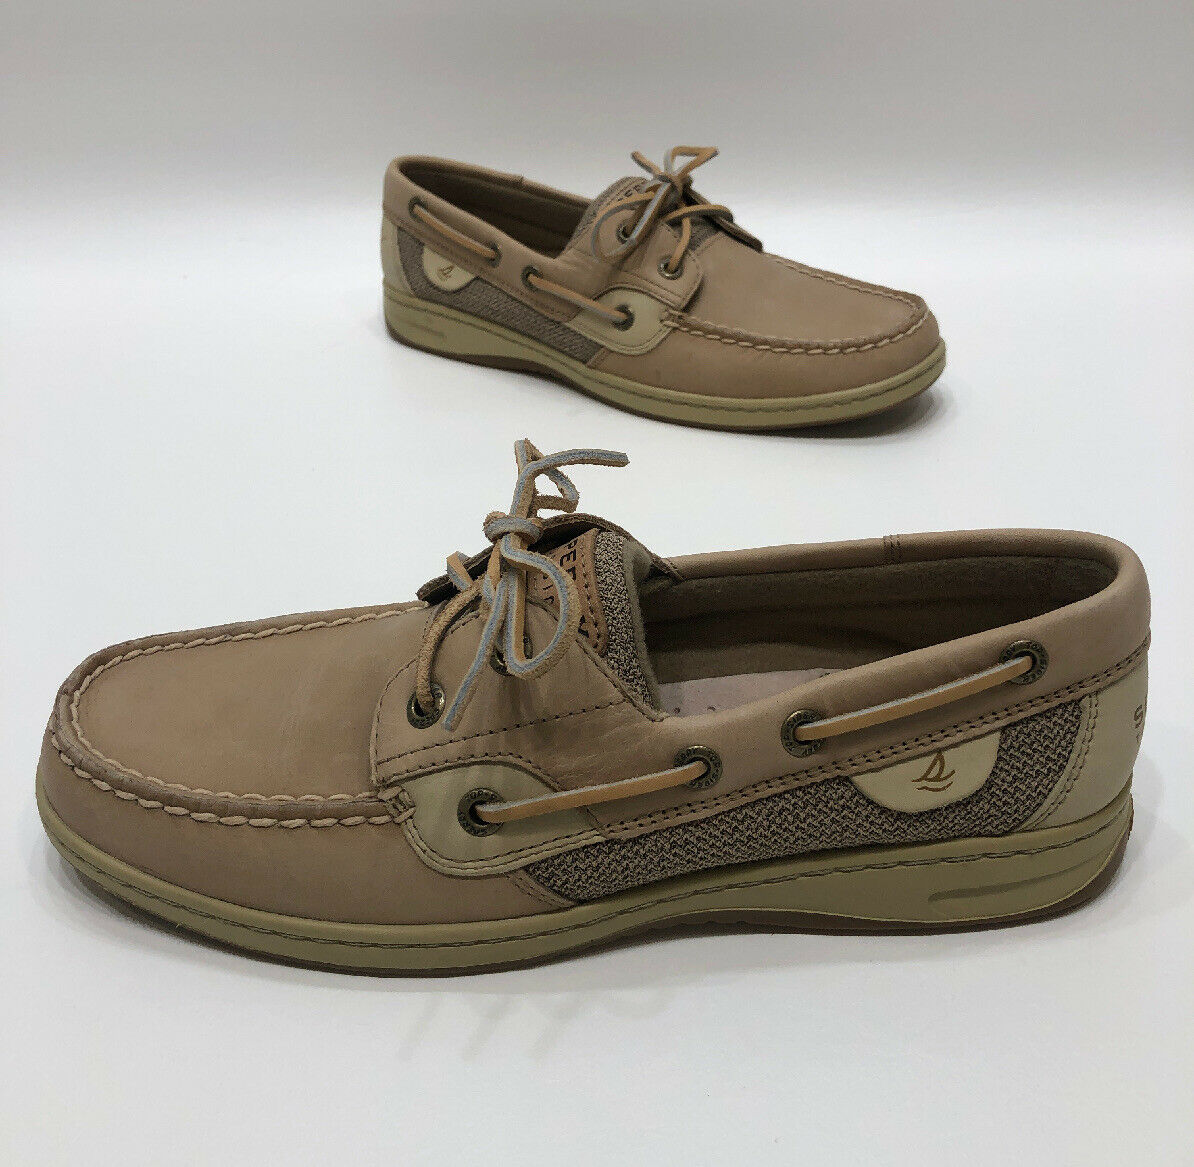 Sperry Top Sider Two Eye Boat Shoes Light Tan Leather Size 8.5 M